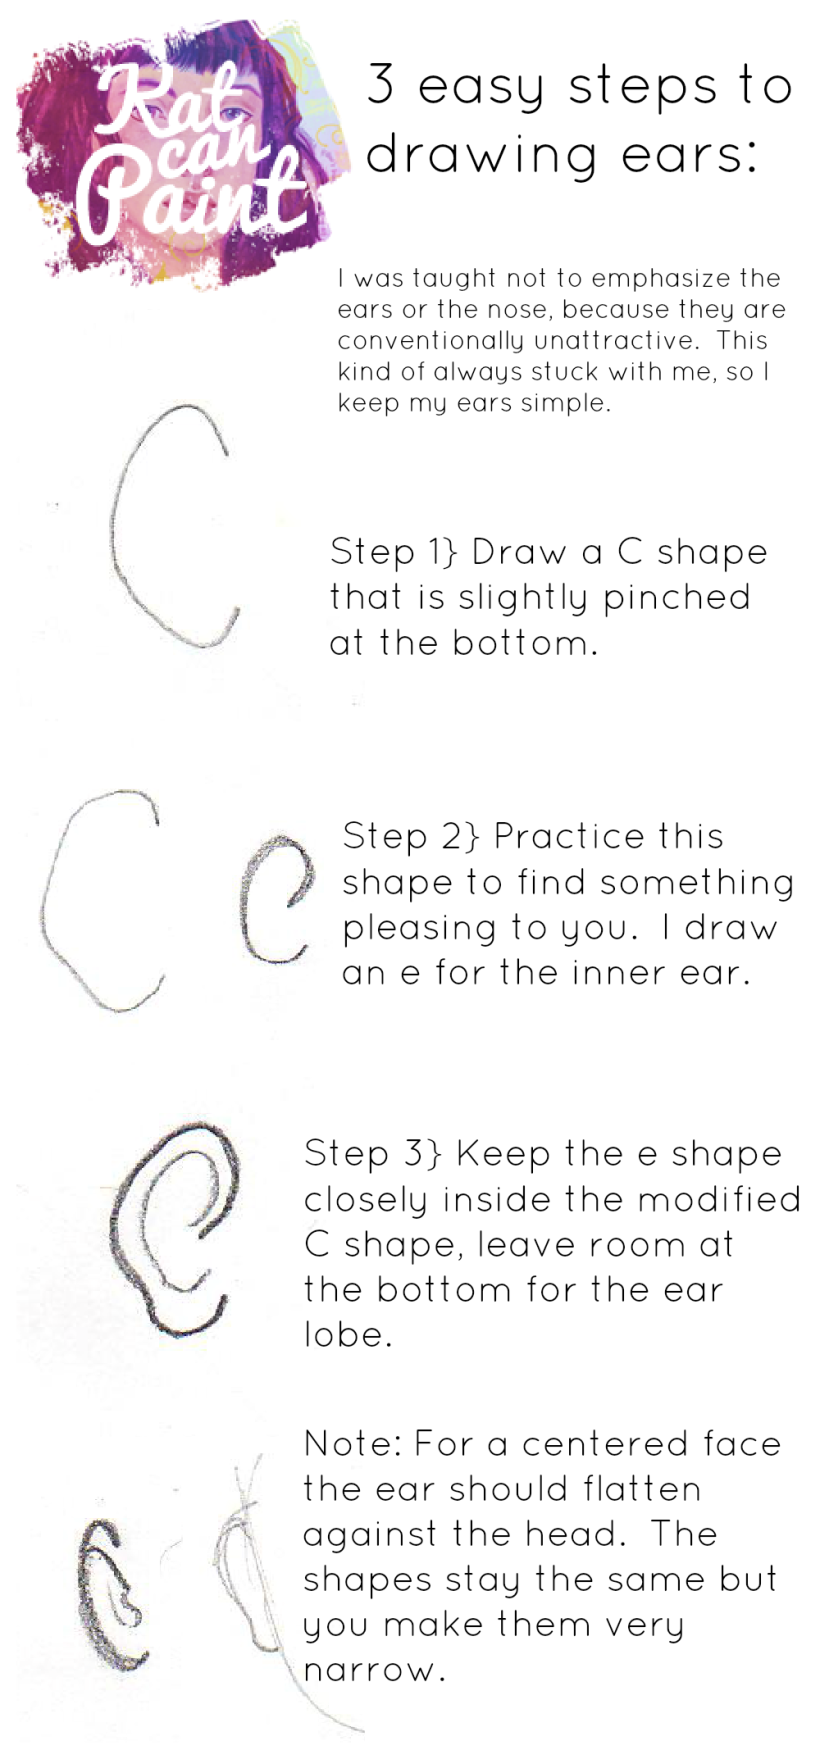 3 simple steps to drawing ears by katcanpaint.com